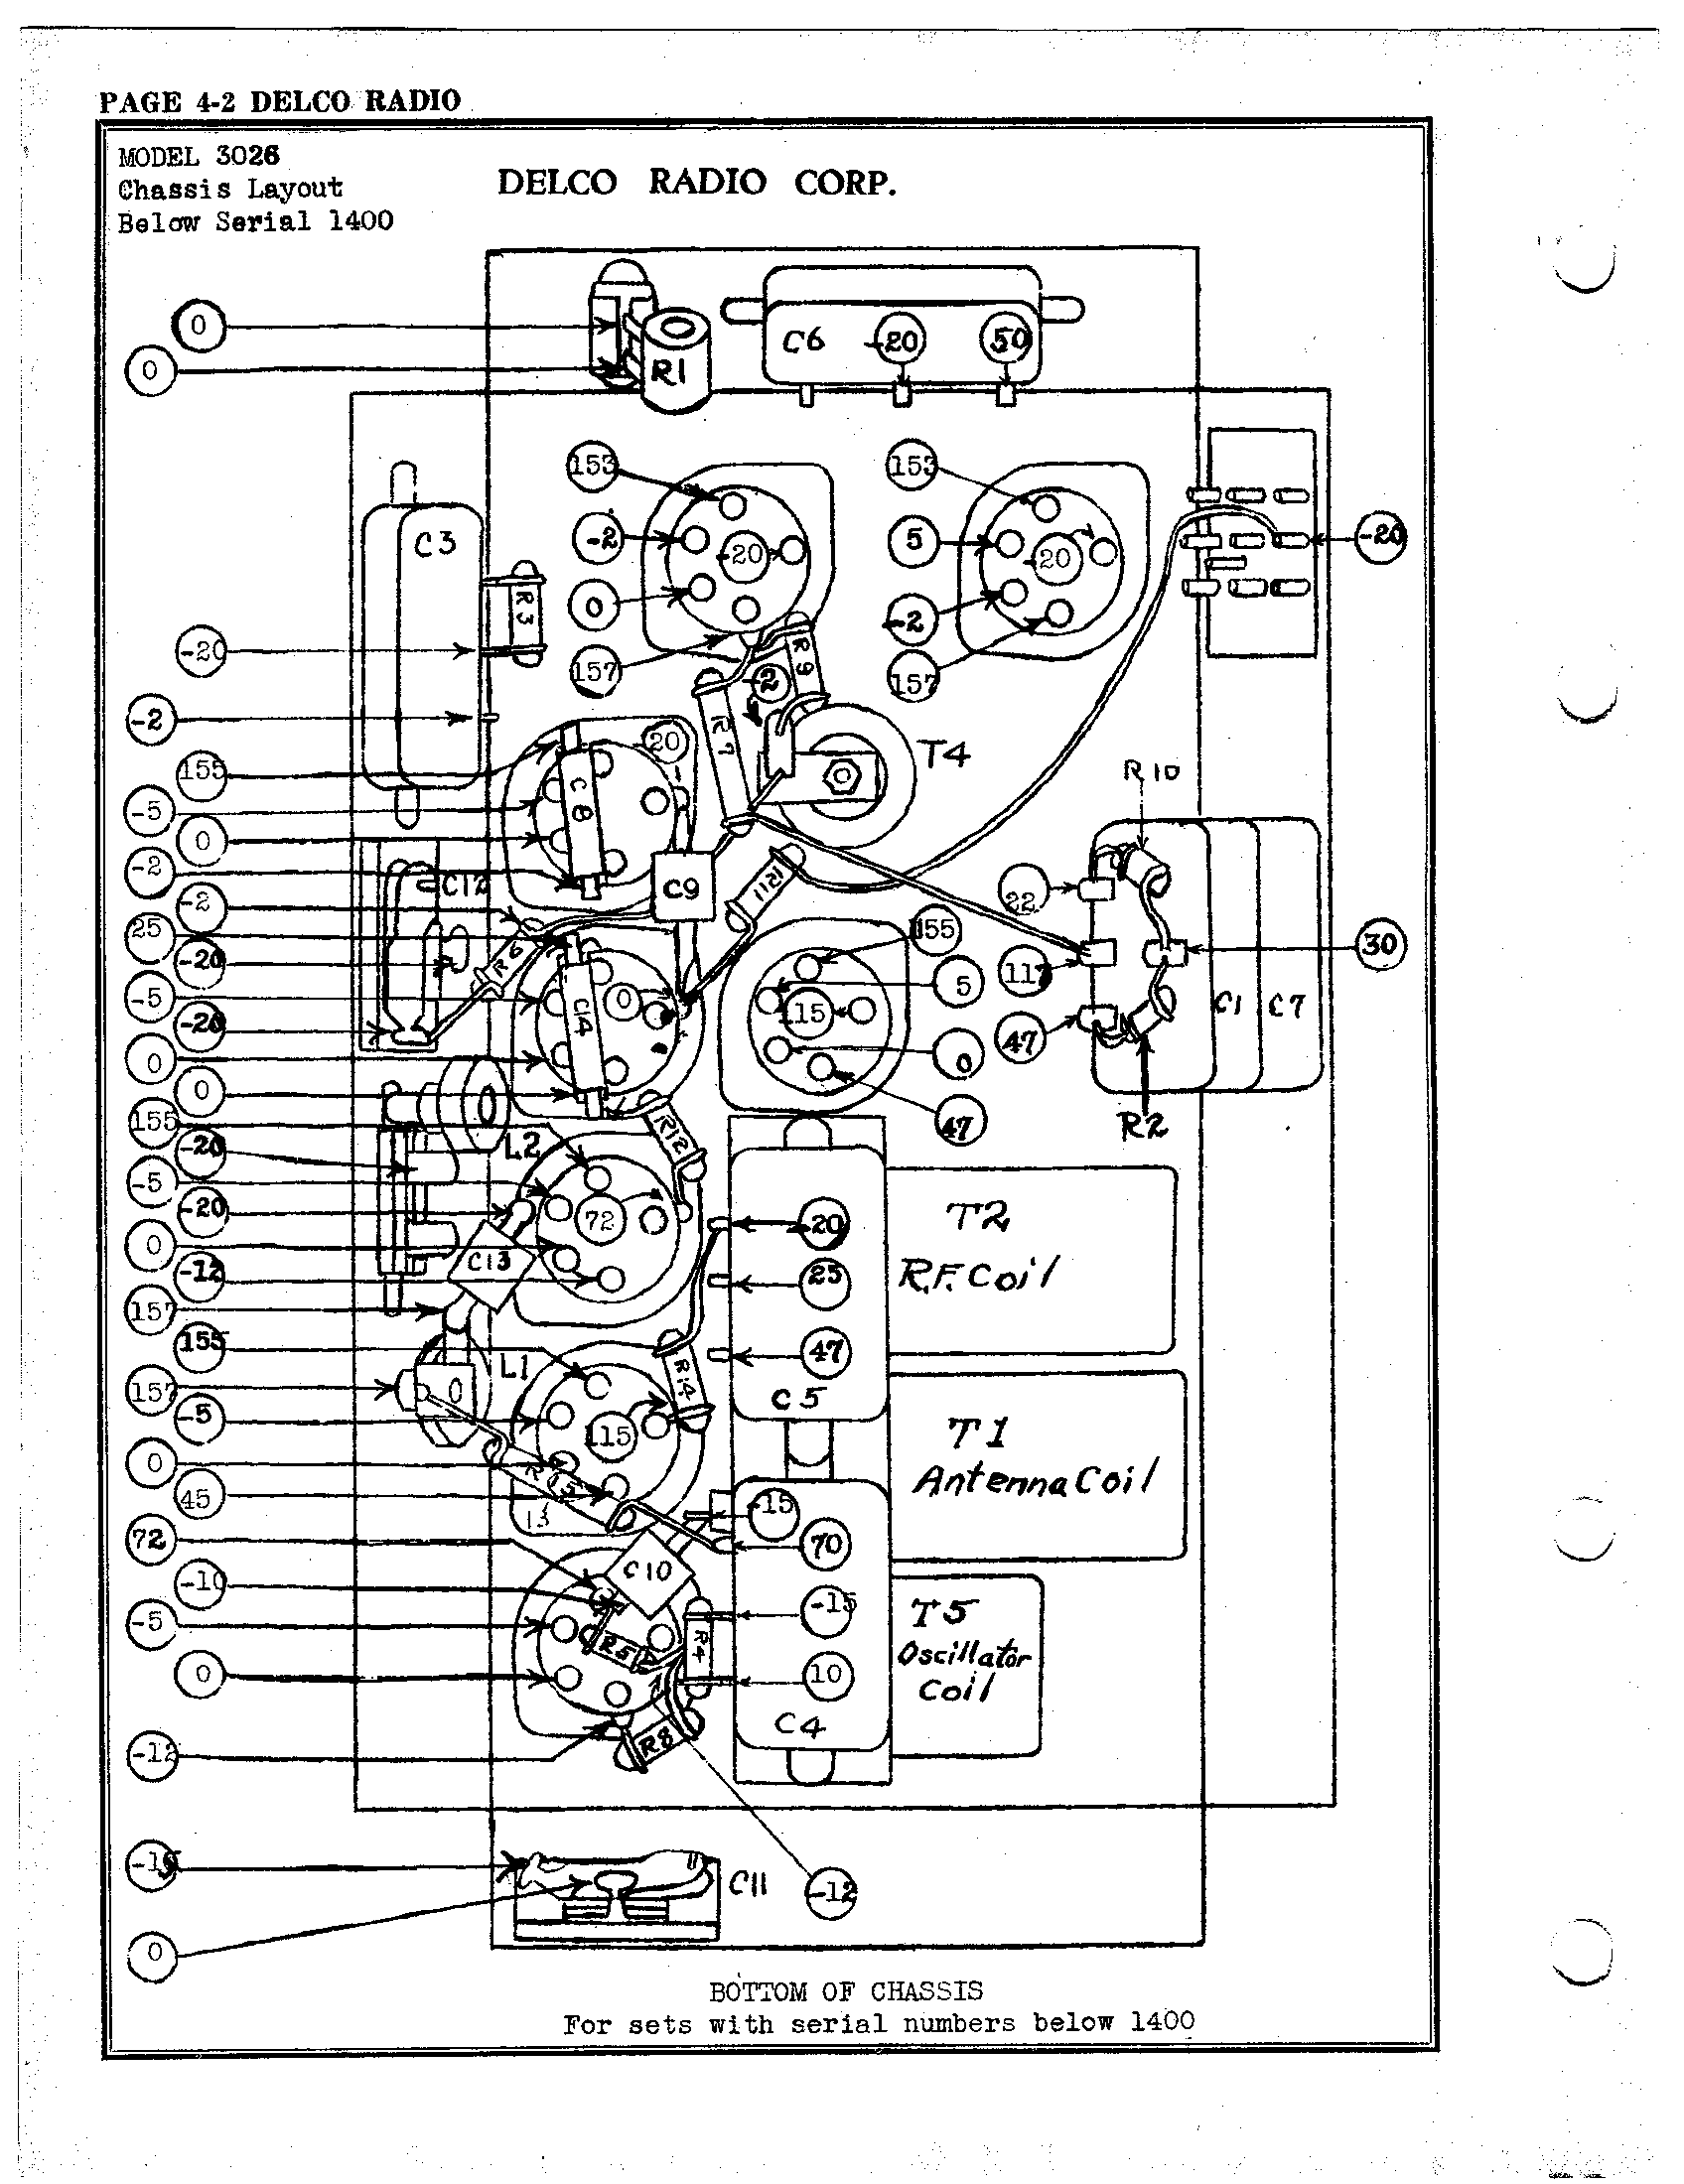 delco model 09354155 wiring diagram delco radio corp. 3026 | antique electronic supply delco voltage regulator wiring diagram